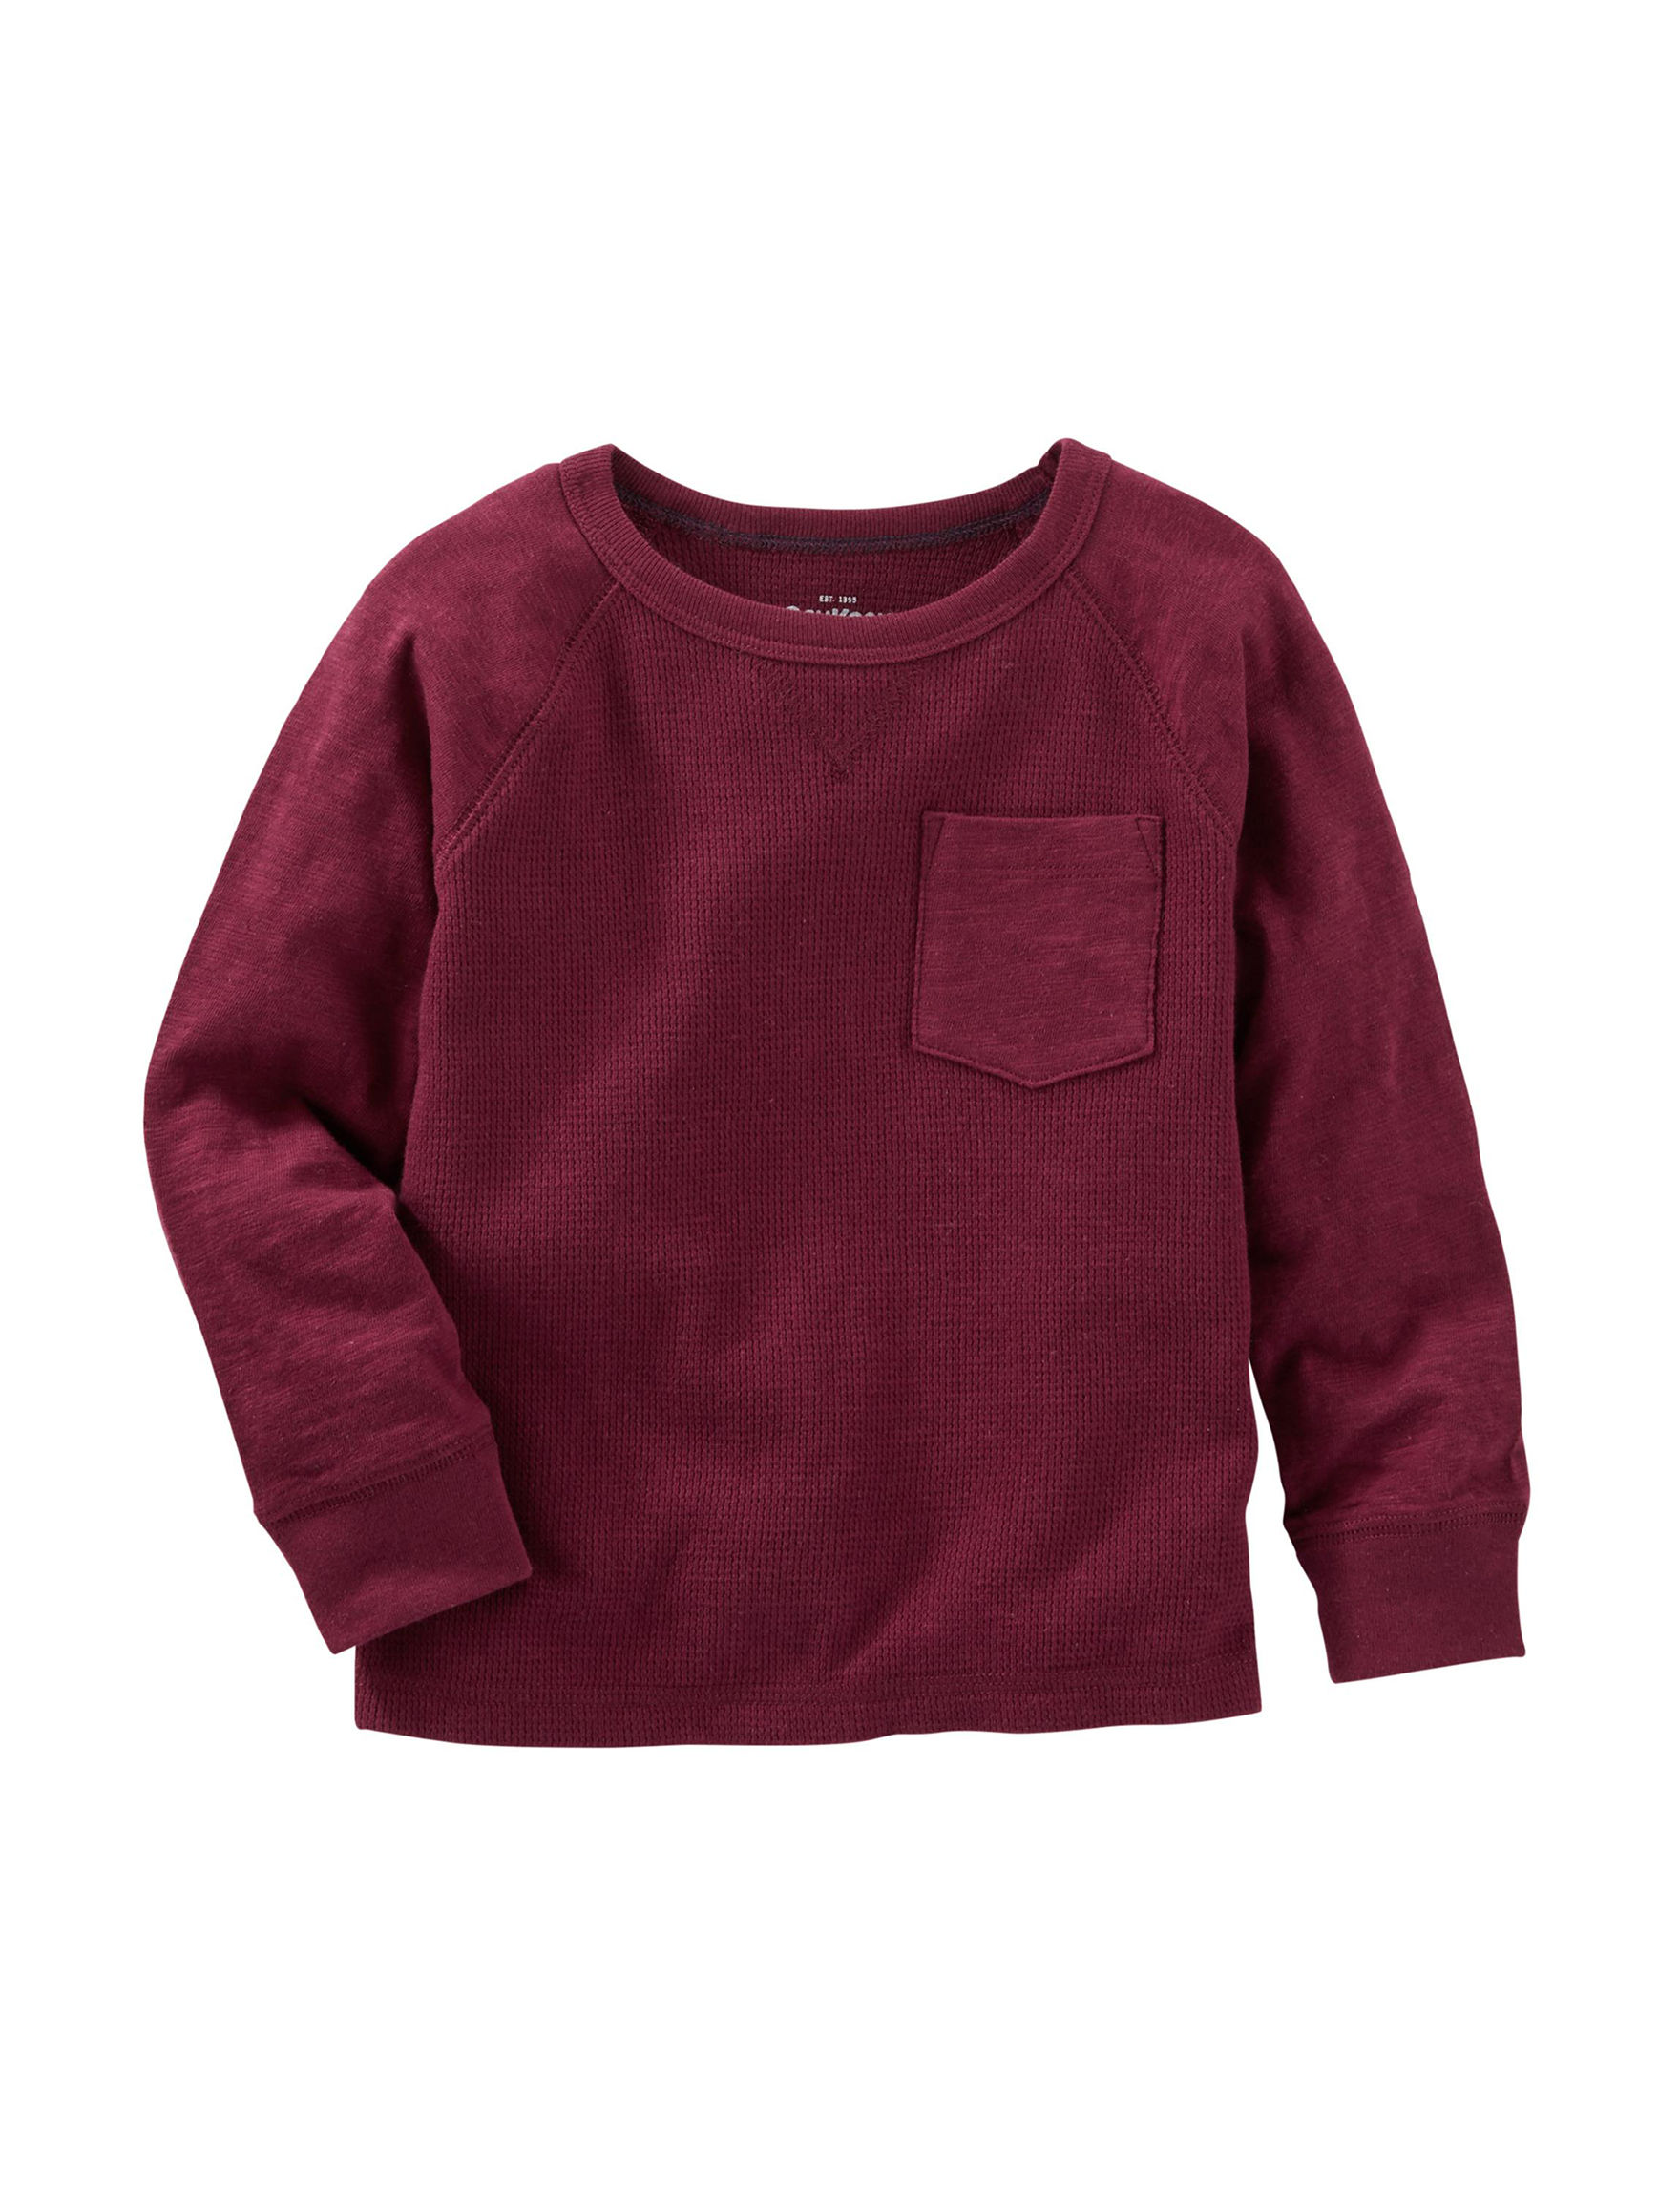 Oshkosh b 39 gosh burgundy thermal shirt boys 4 7 stage Burgundy polo shirt boys